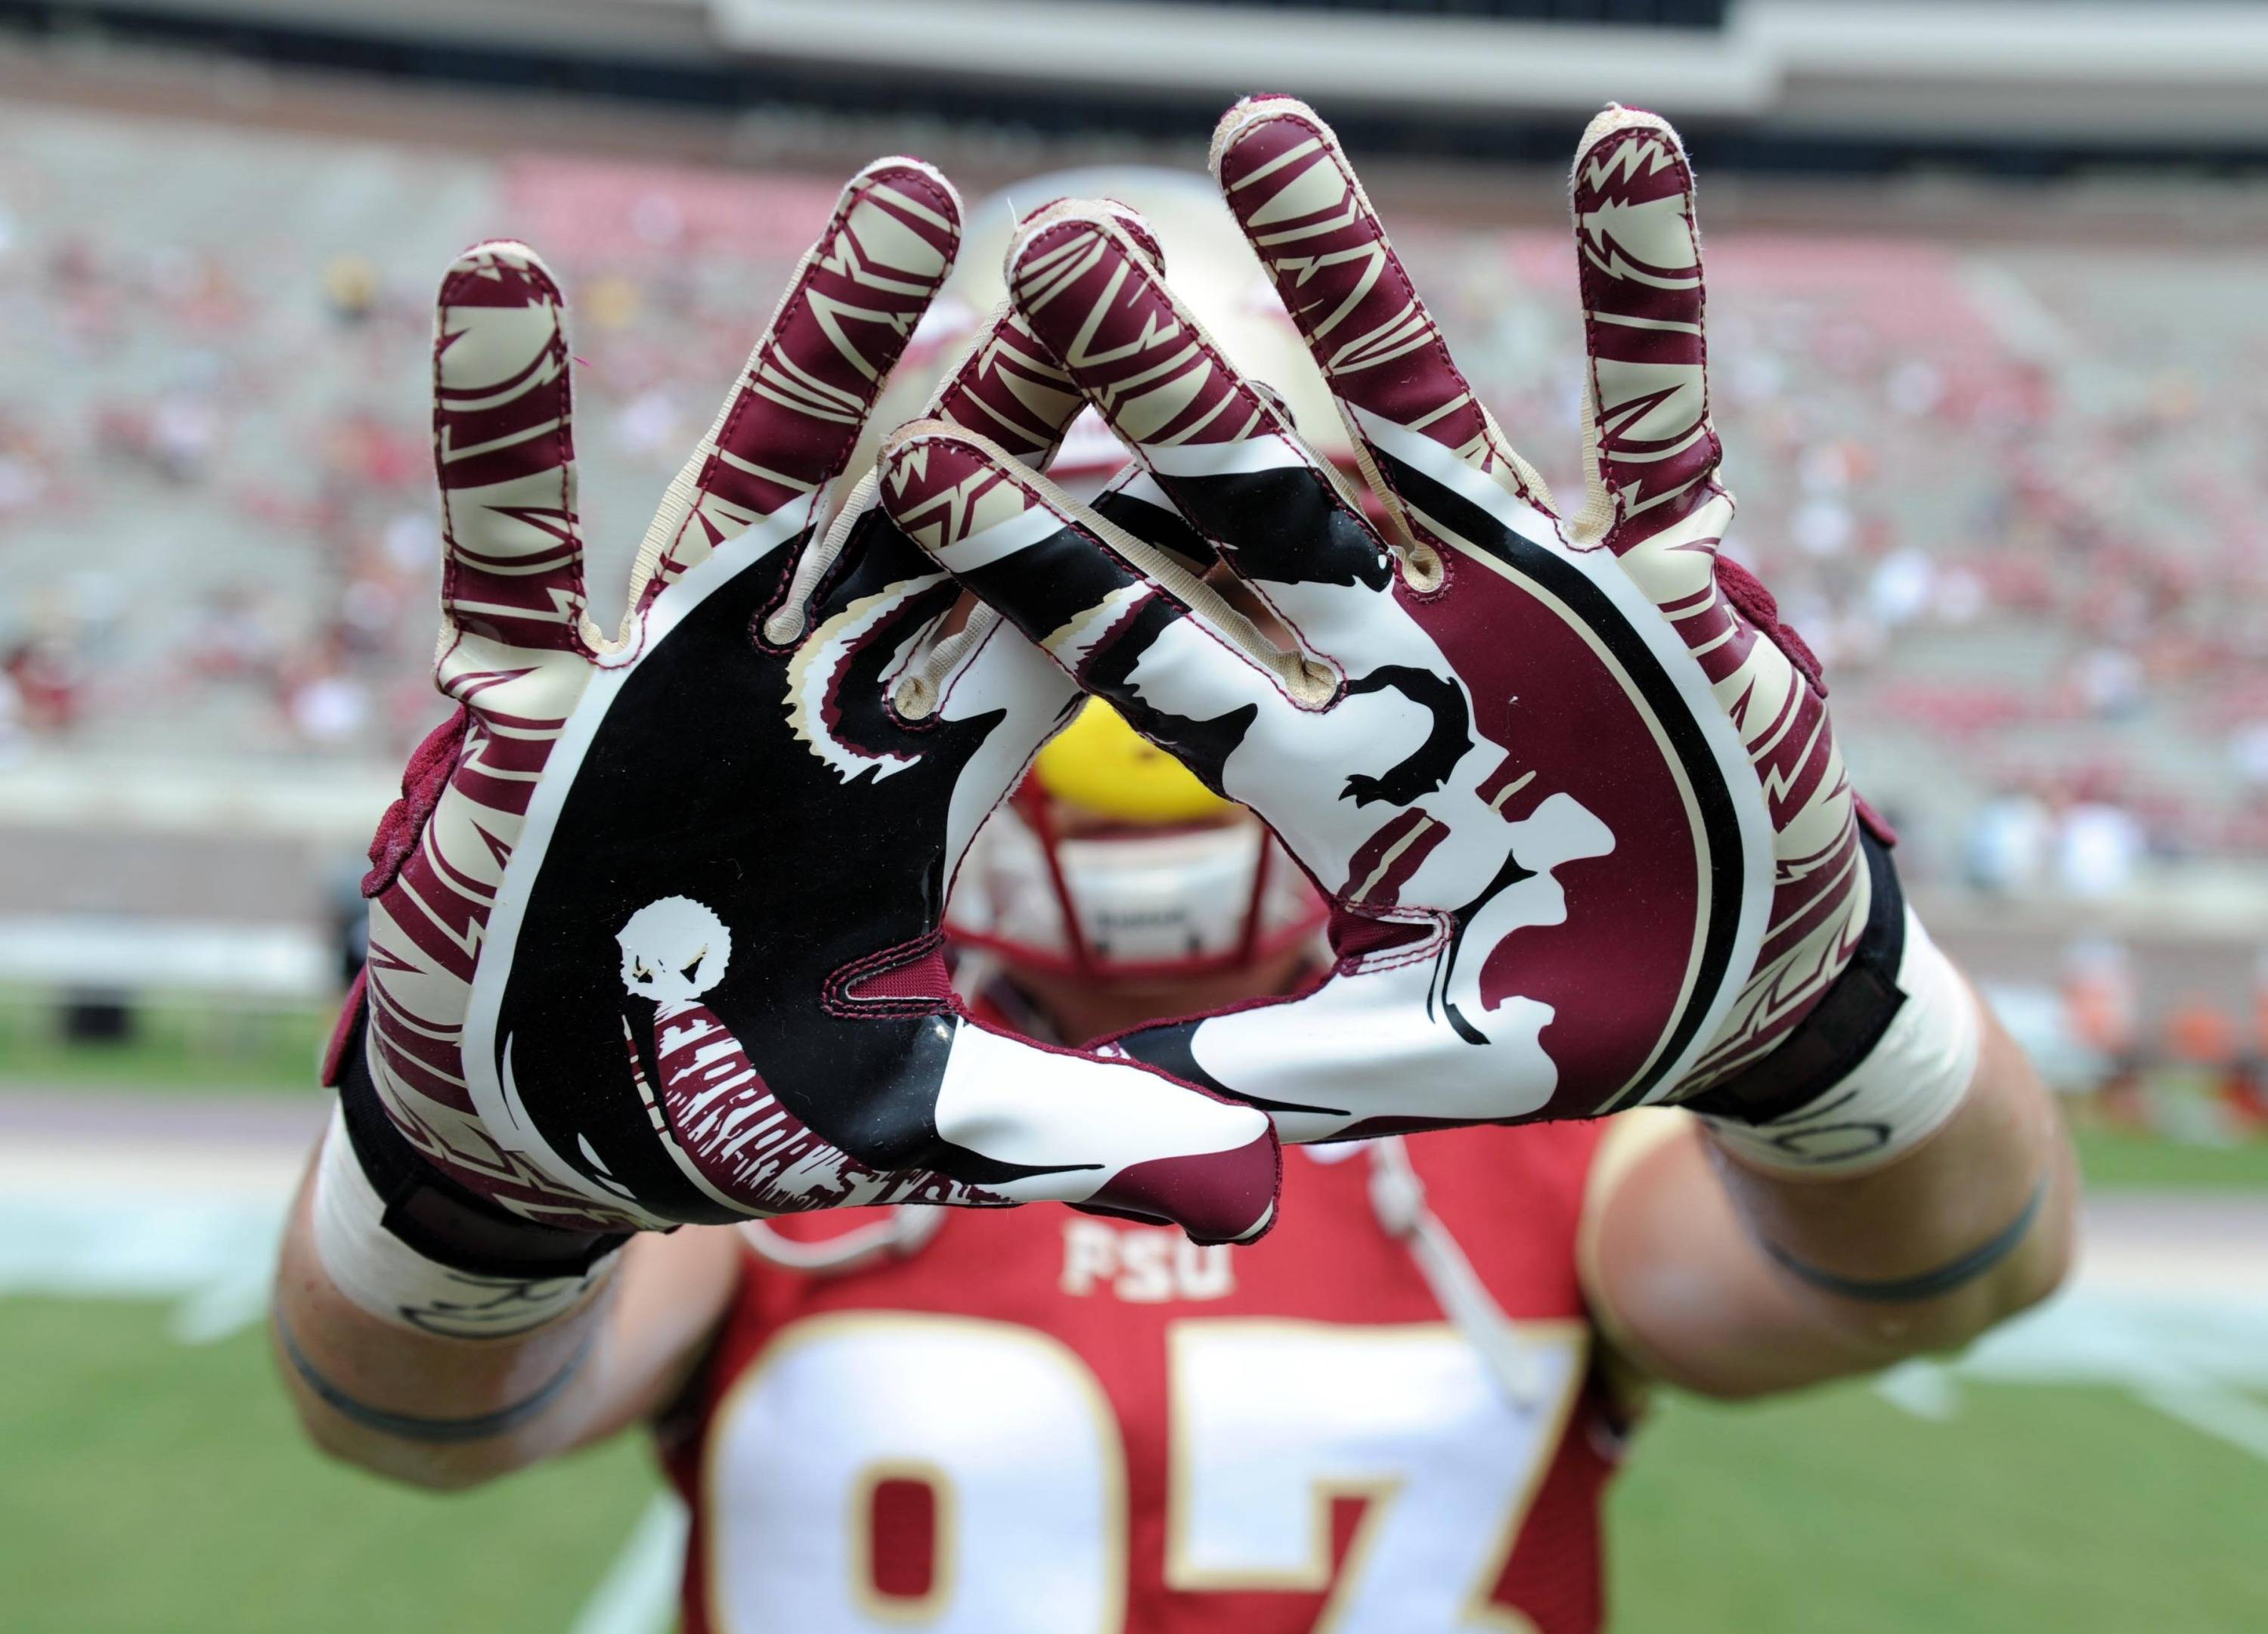 Sep 14, 2013; Tallahassee, FL, USA; A view of Florida State Seminoles gloves before the start of the game against the Nevada Wolf Pack at Doak Campbell Stadium. Mandatory Credit: Melina Vastola-USA TODAY Sports